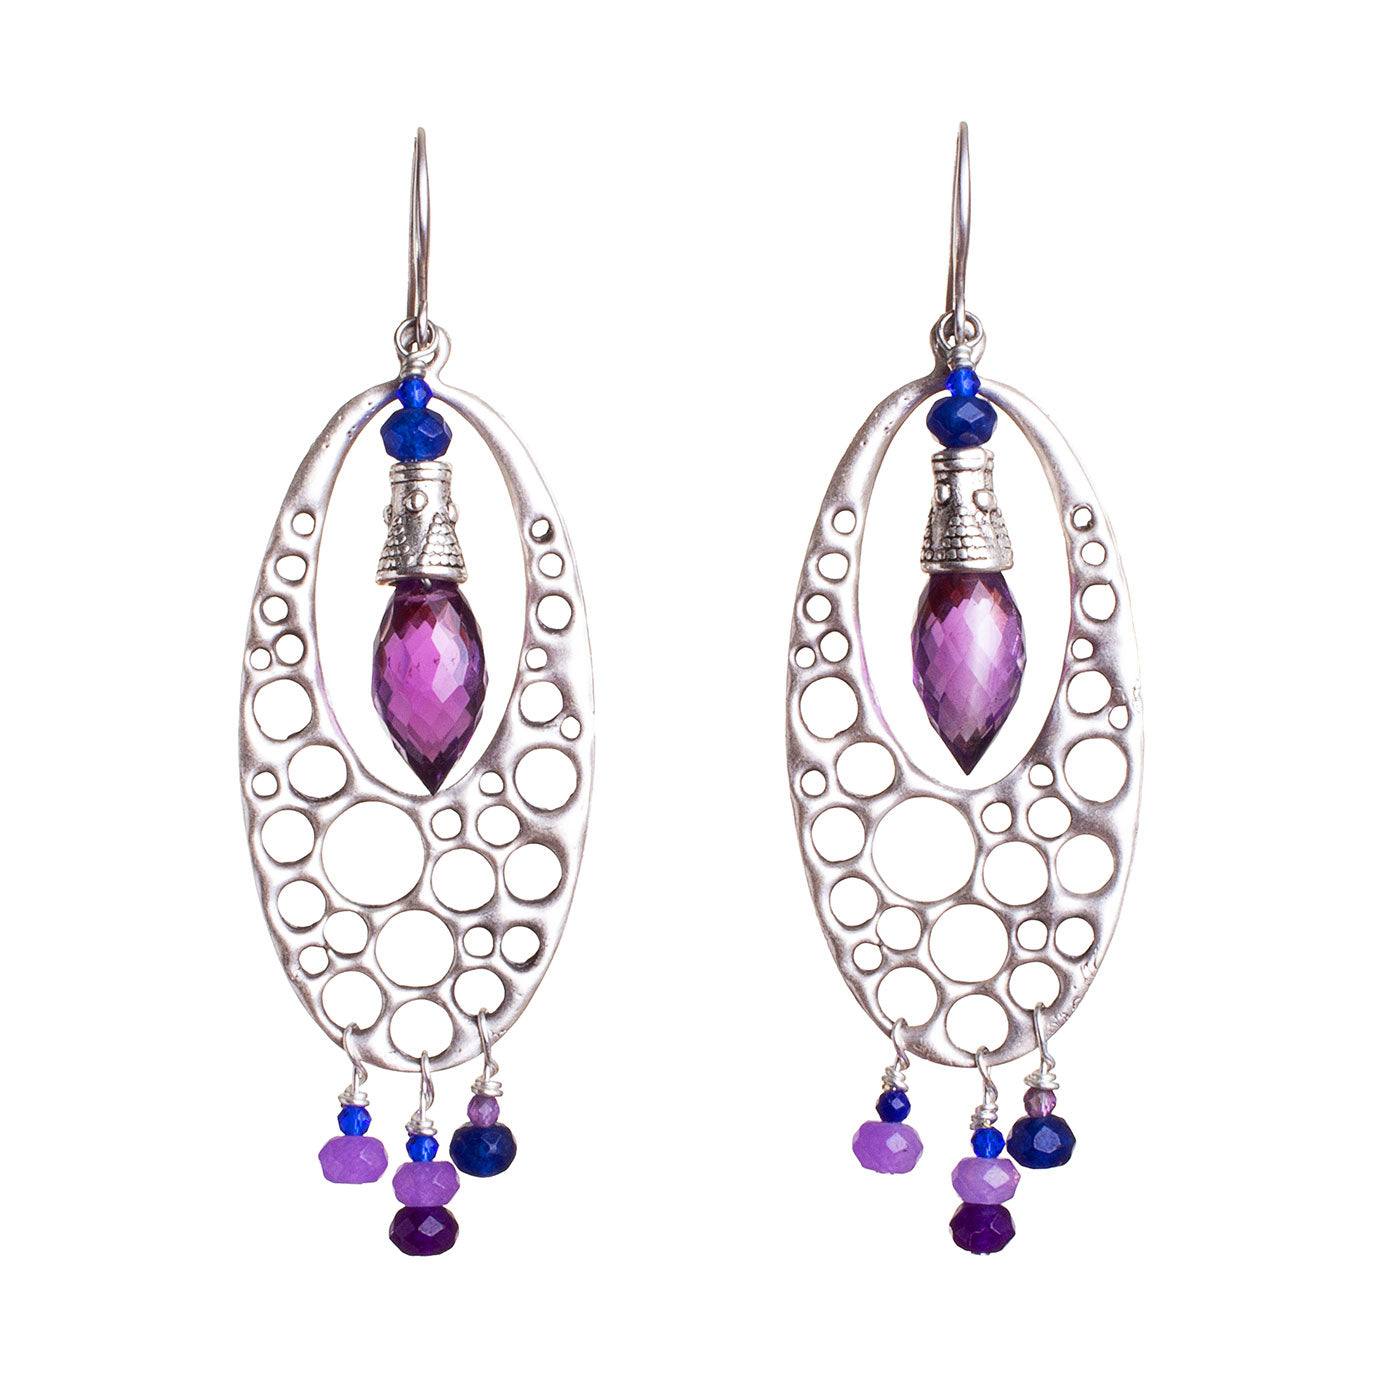 N°693 The Quiet Purple & Deep Blue Wave Statement Earrings